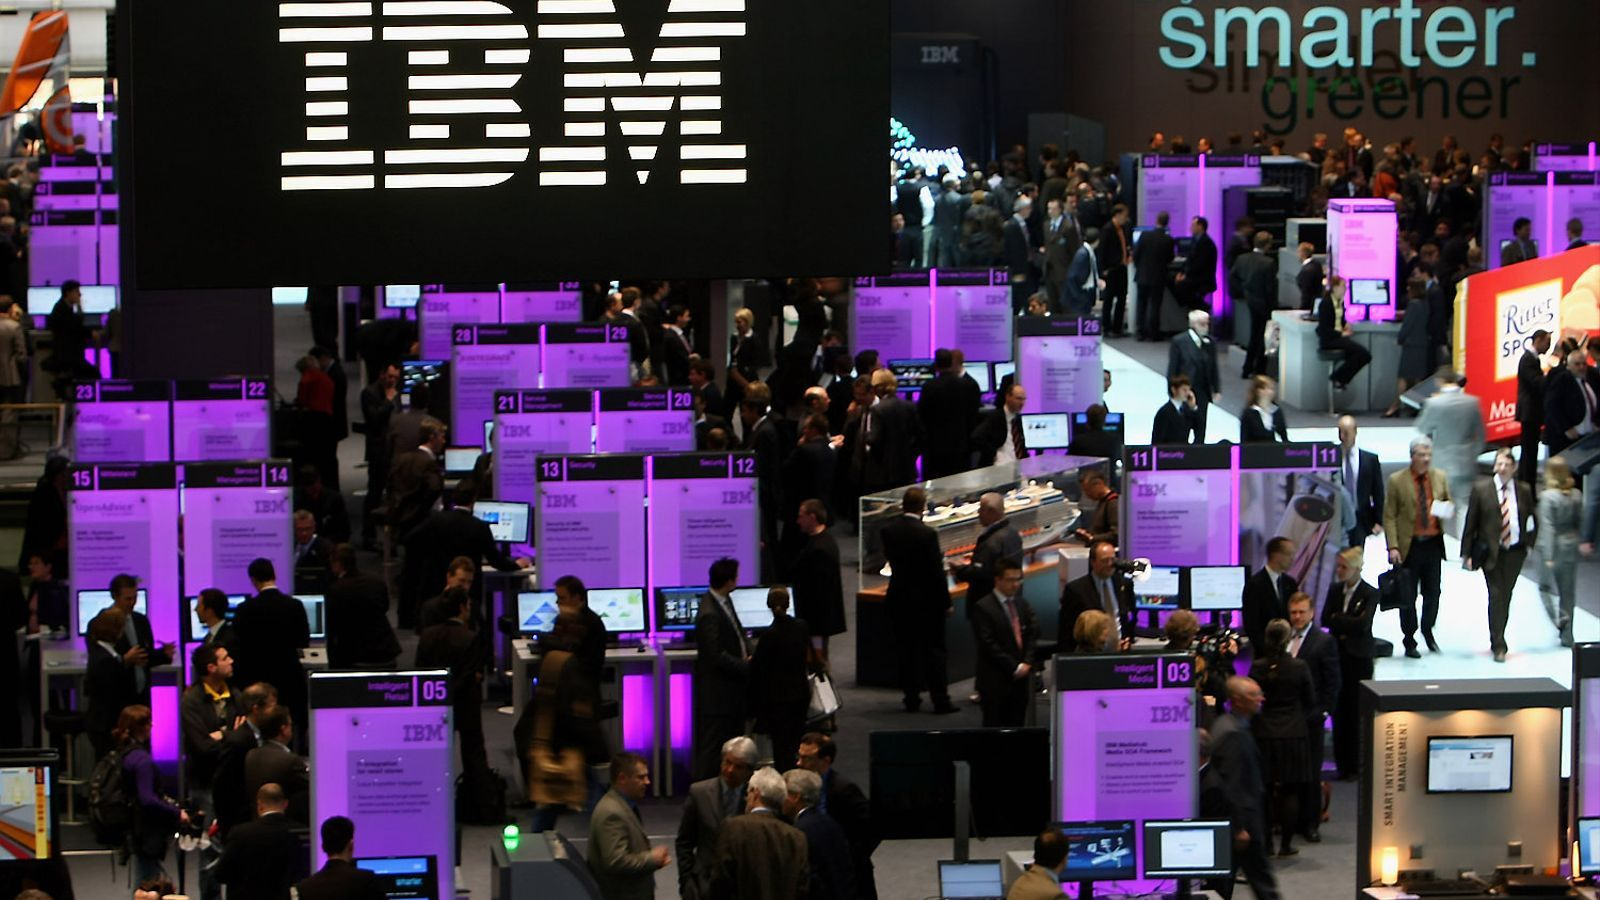 Multinational giants that knew how to reinvent themselves